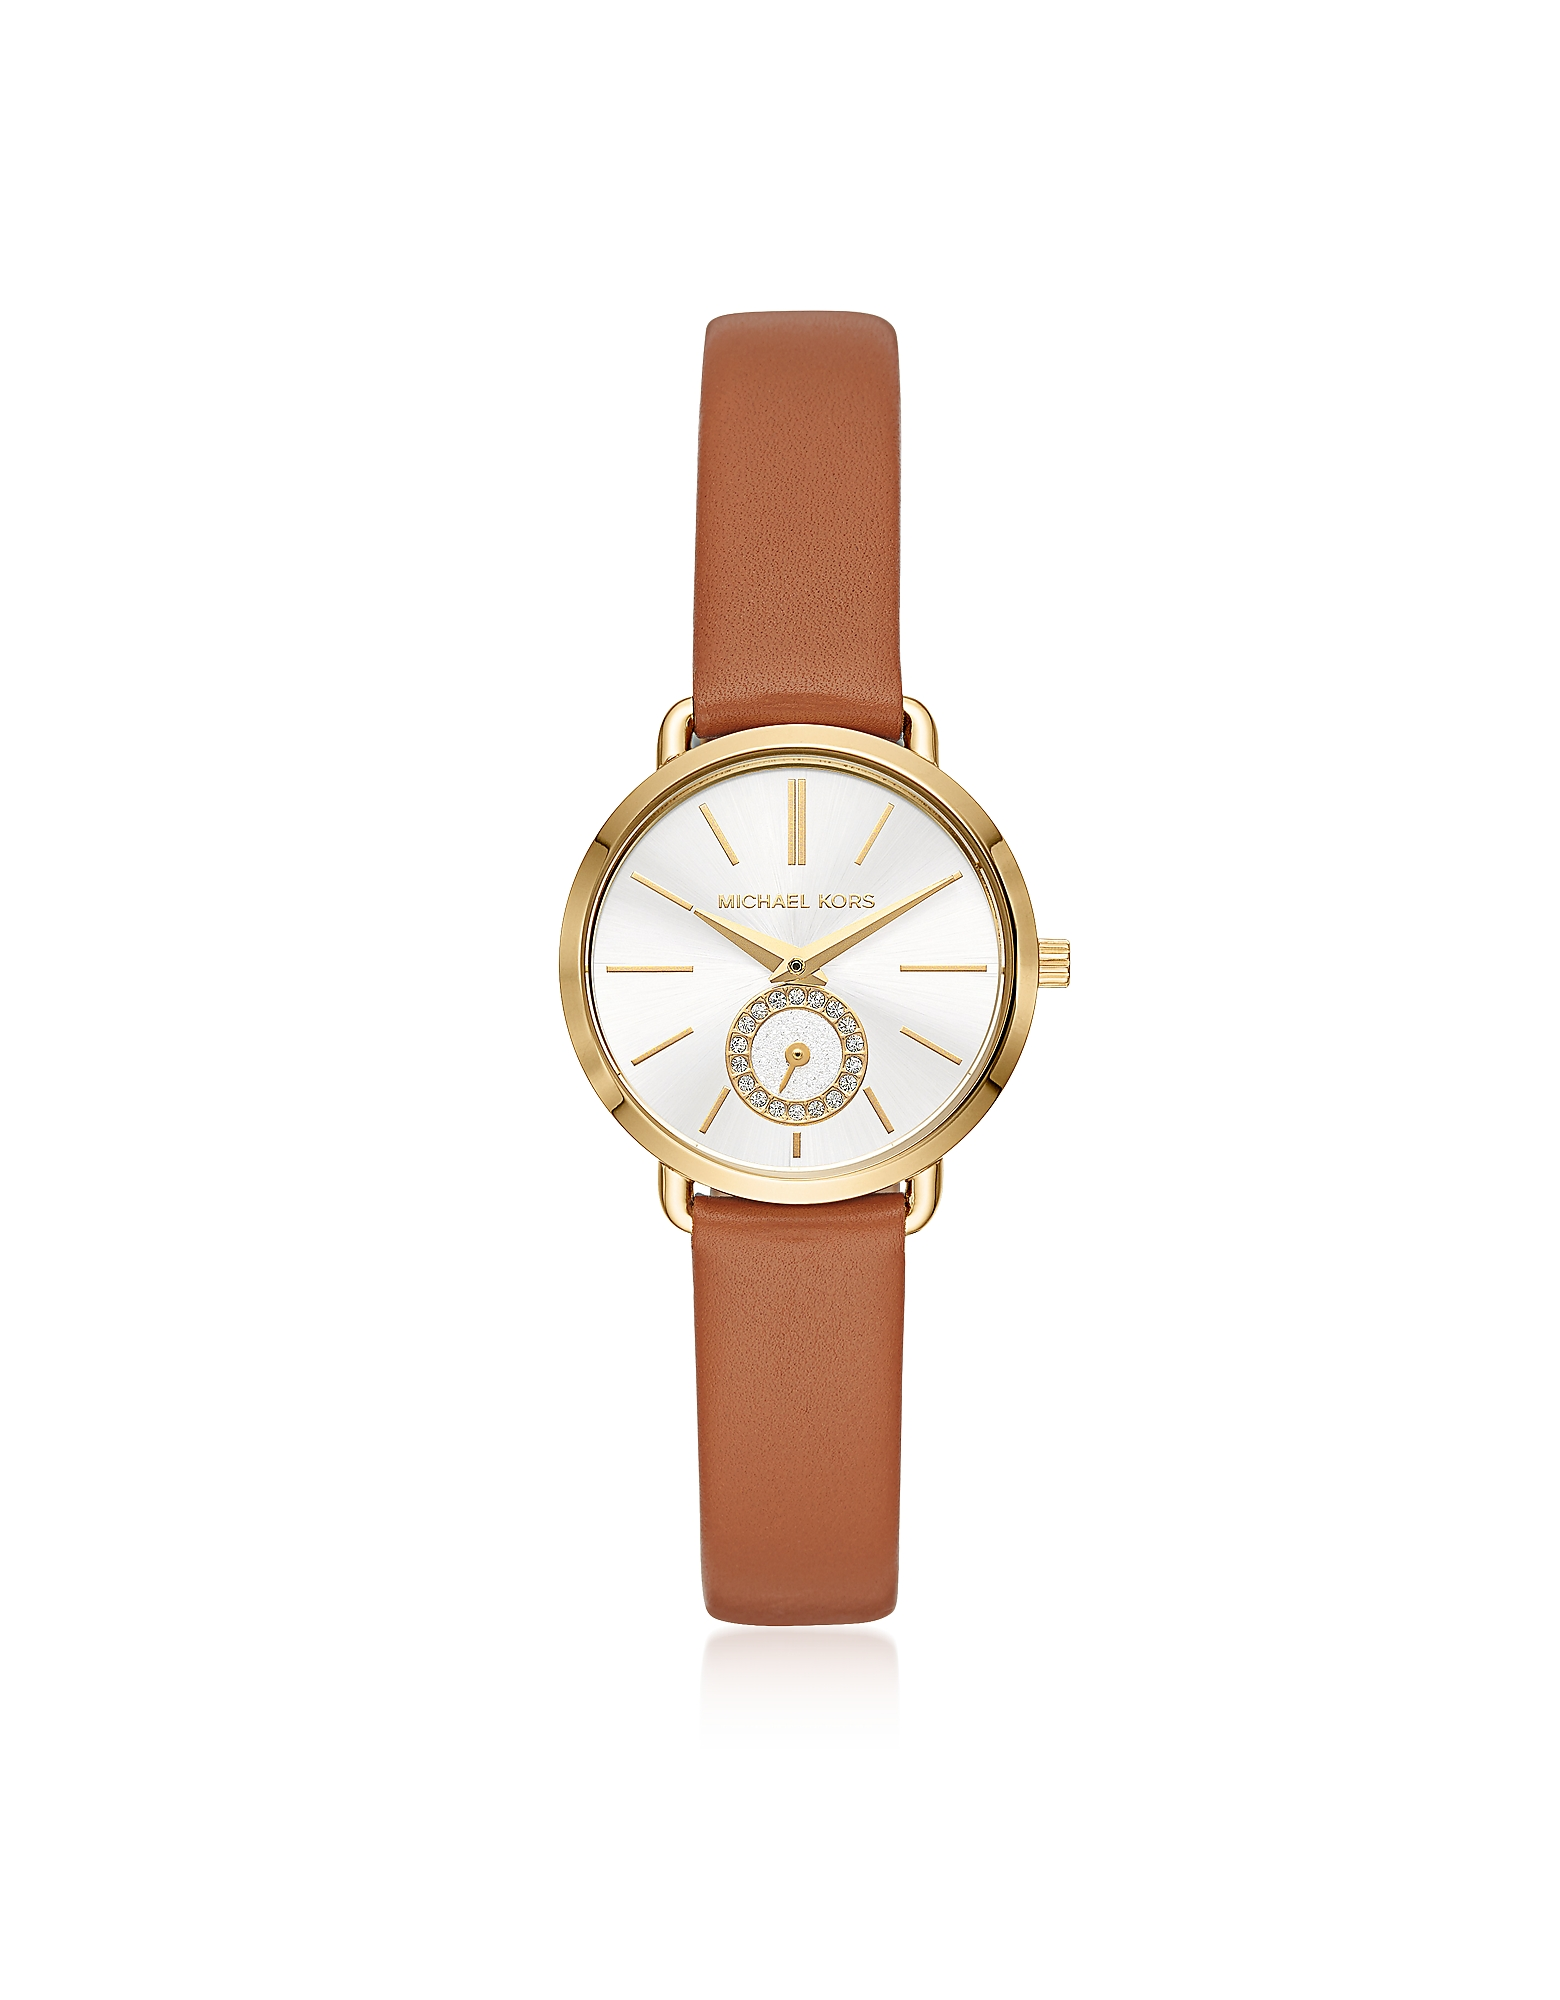 Michael Kors Women's Watches, Michael Kors Women's Gold-Tone and Luggage Leather Portia Watch